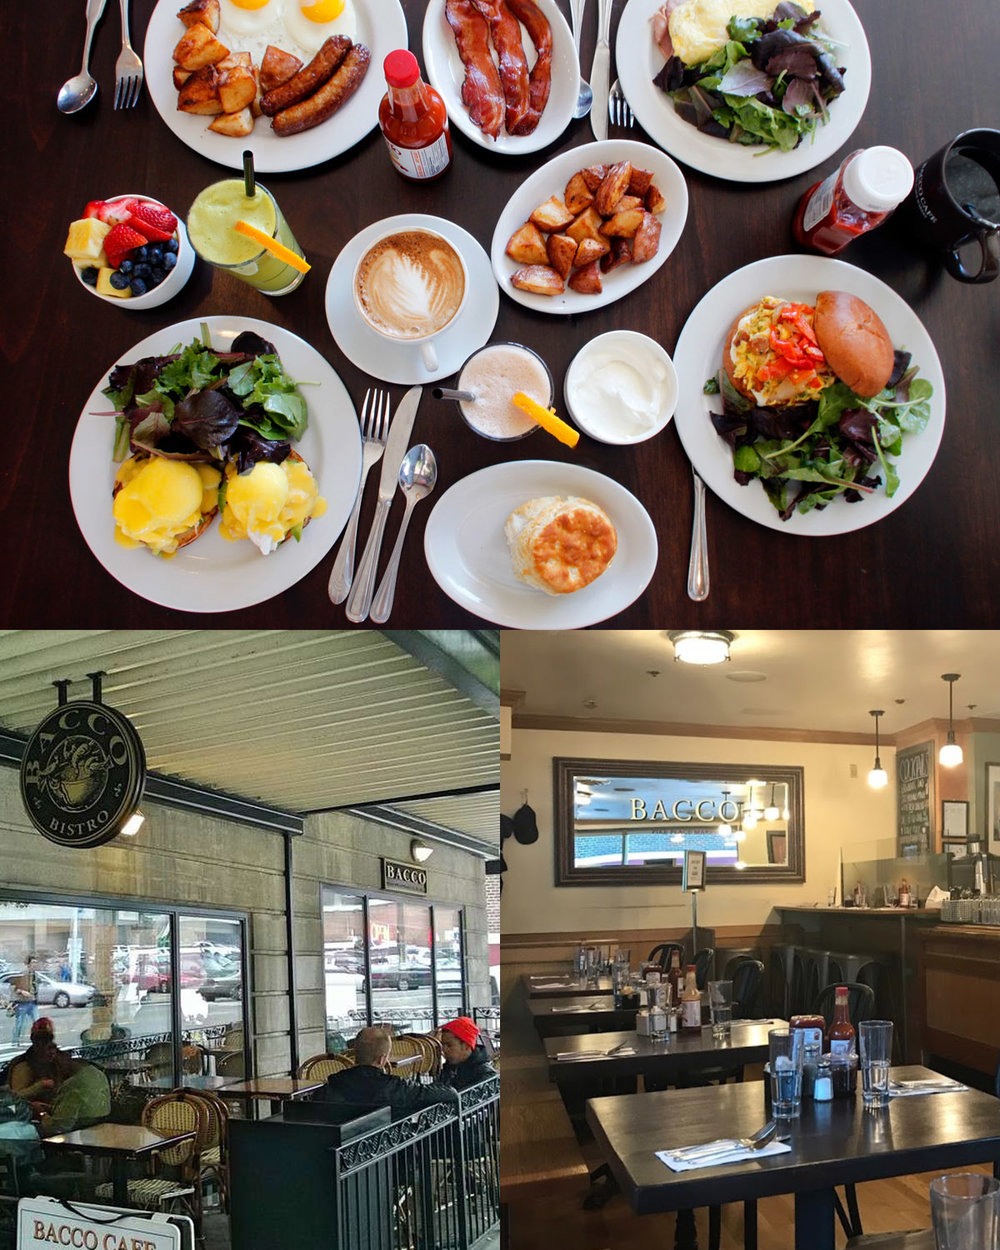 Bacco Cafe - Bacco fuses a mixture of pacific northwest cuisine with modern fare, refreshing the palettes of it's customers in an invigorating nature.